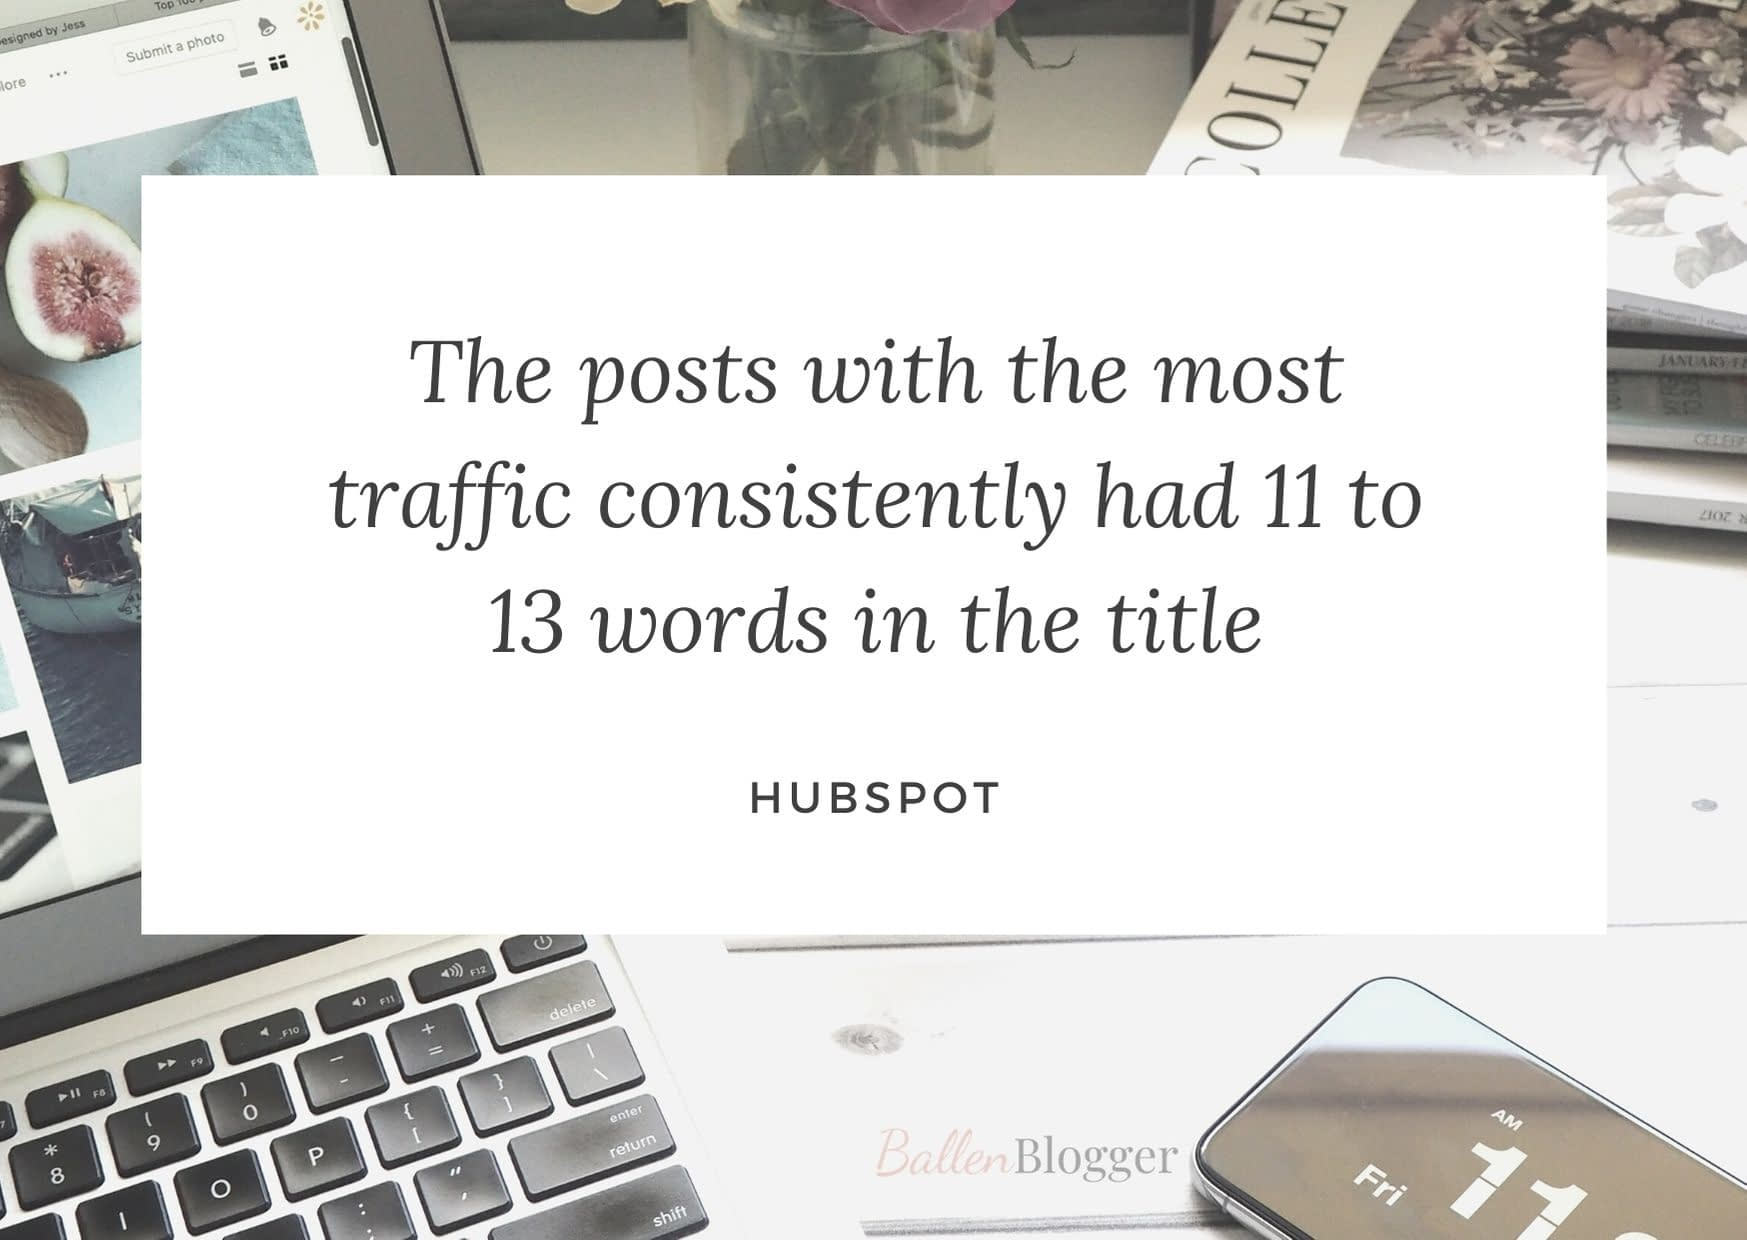 Hubspot says that in their study, they showed that the posts with the most traffic consistently had 11 to 13 words in the title.